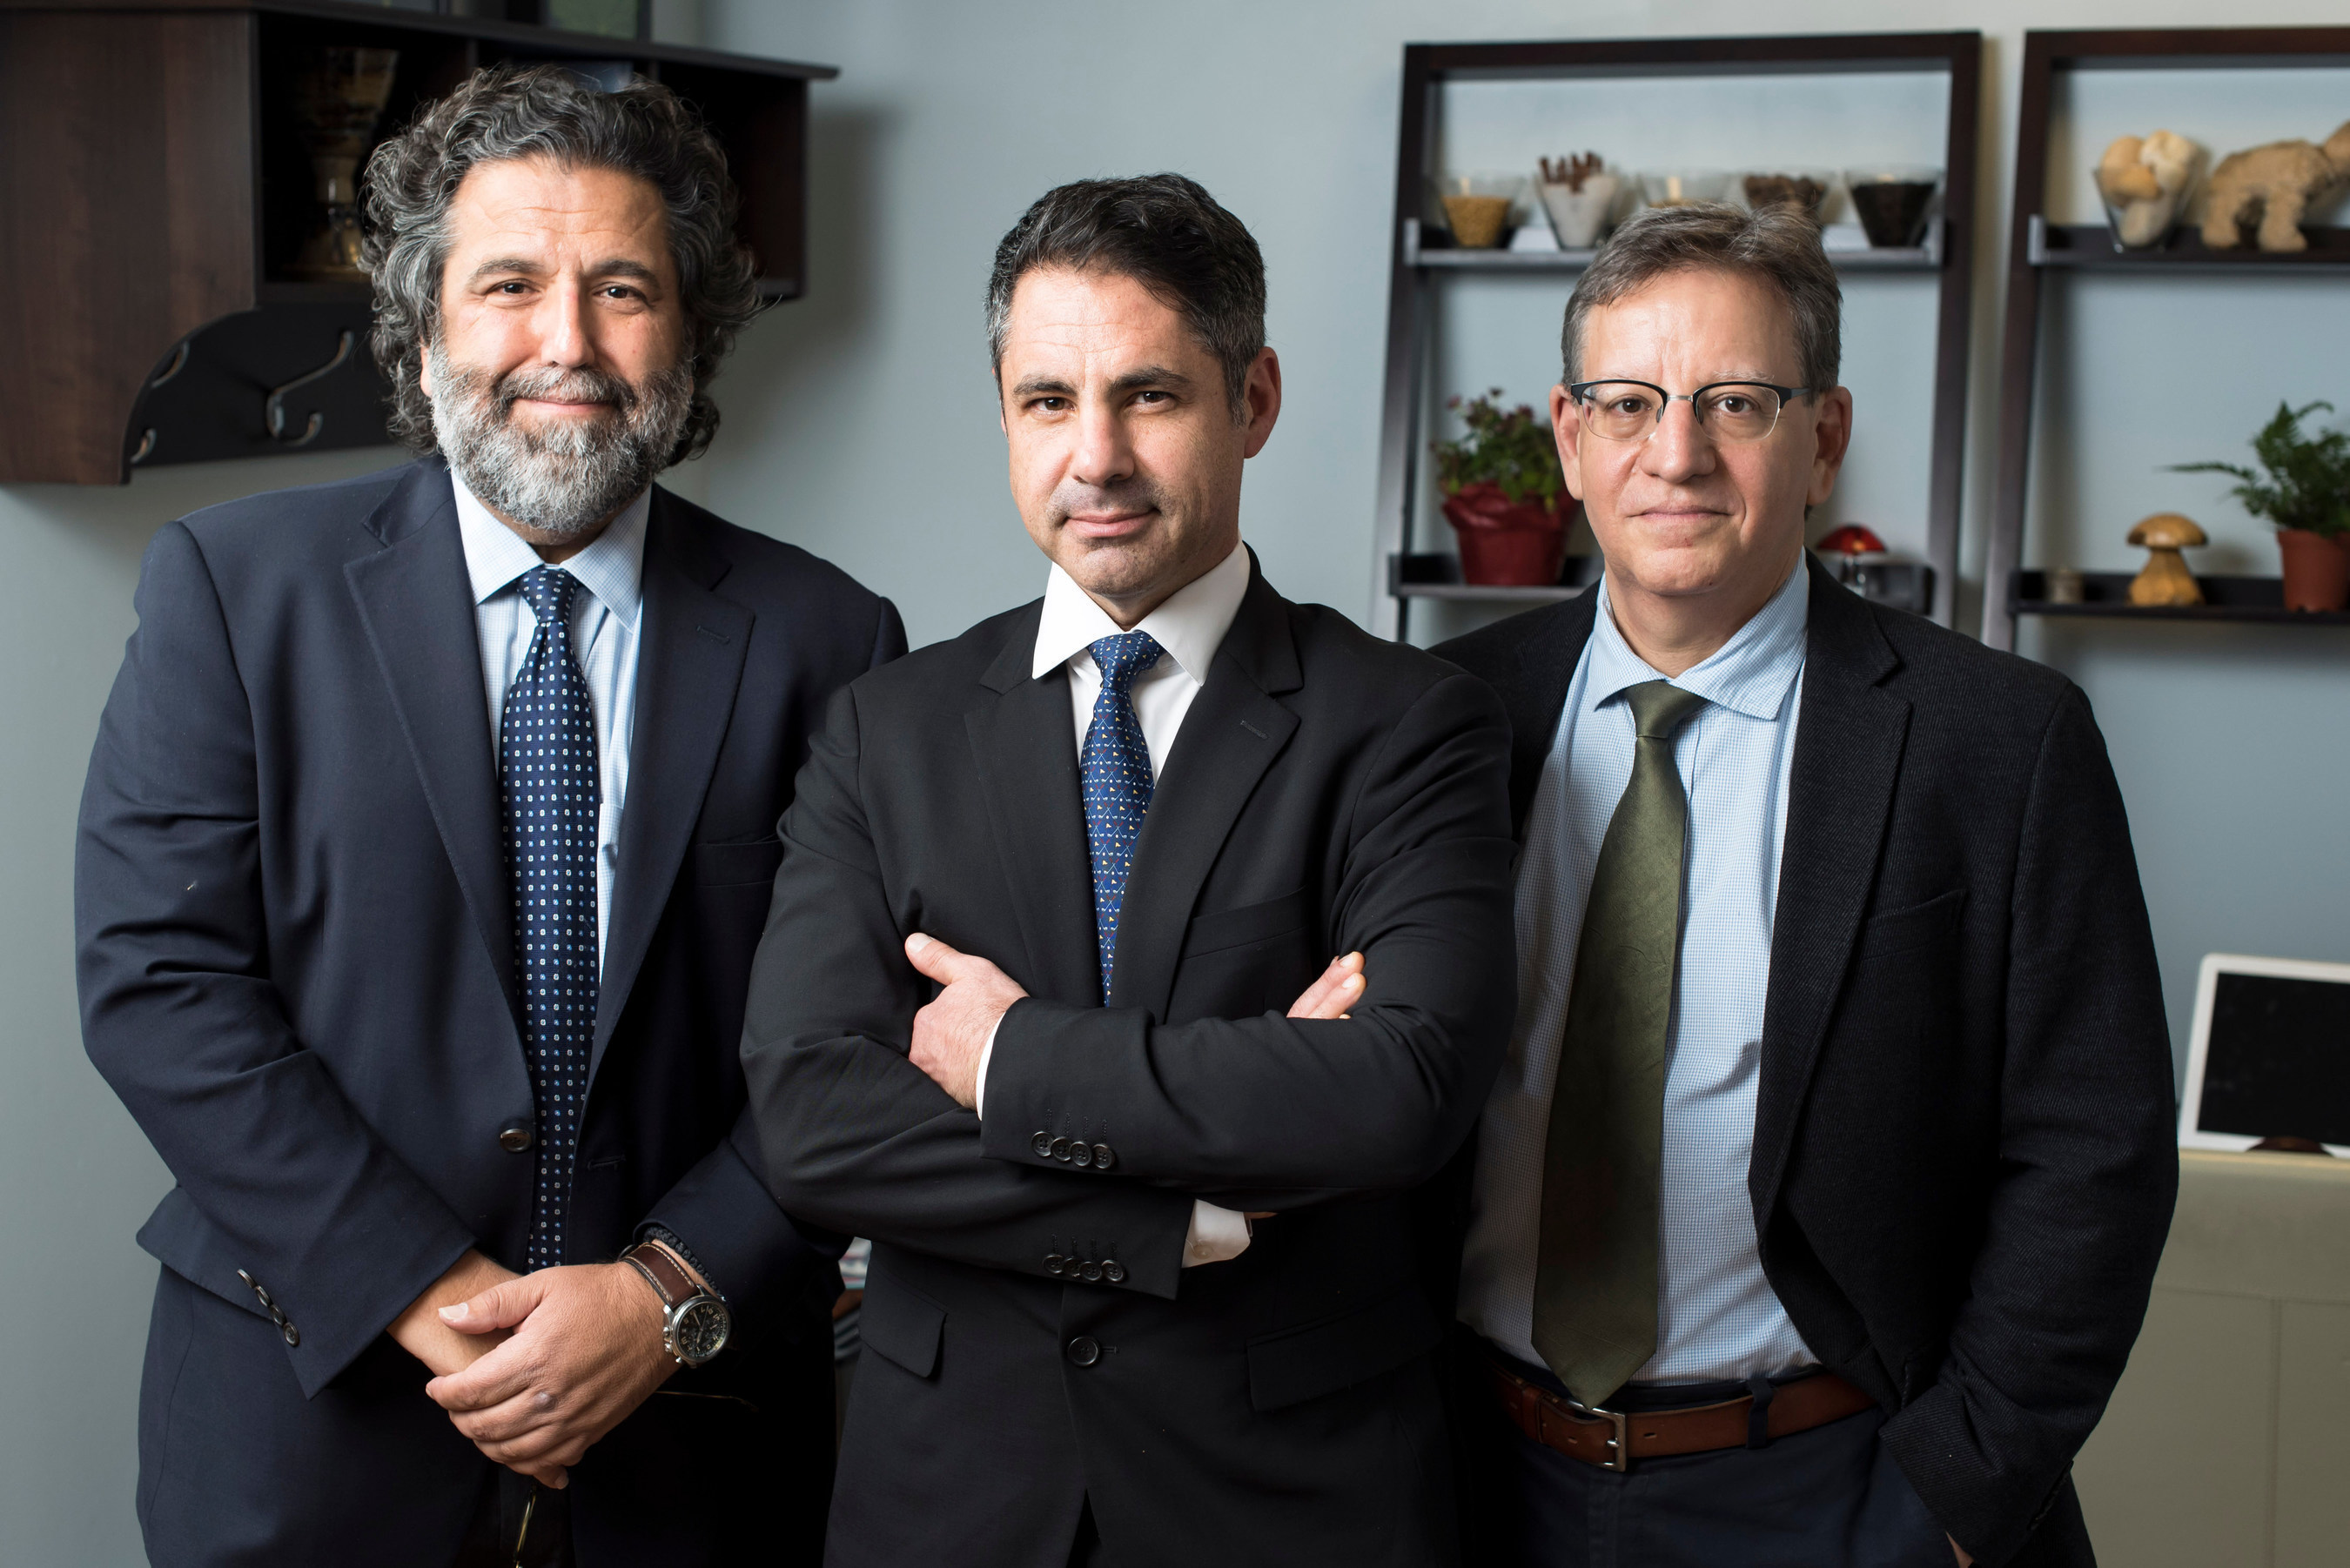 From left: Anthony Bossis, PhD; Stephen Ross, MD; and Jeffrey Guss, MD, all at NYU Langone Medical Center